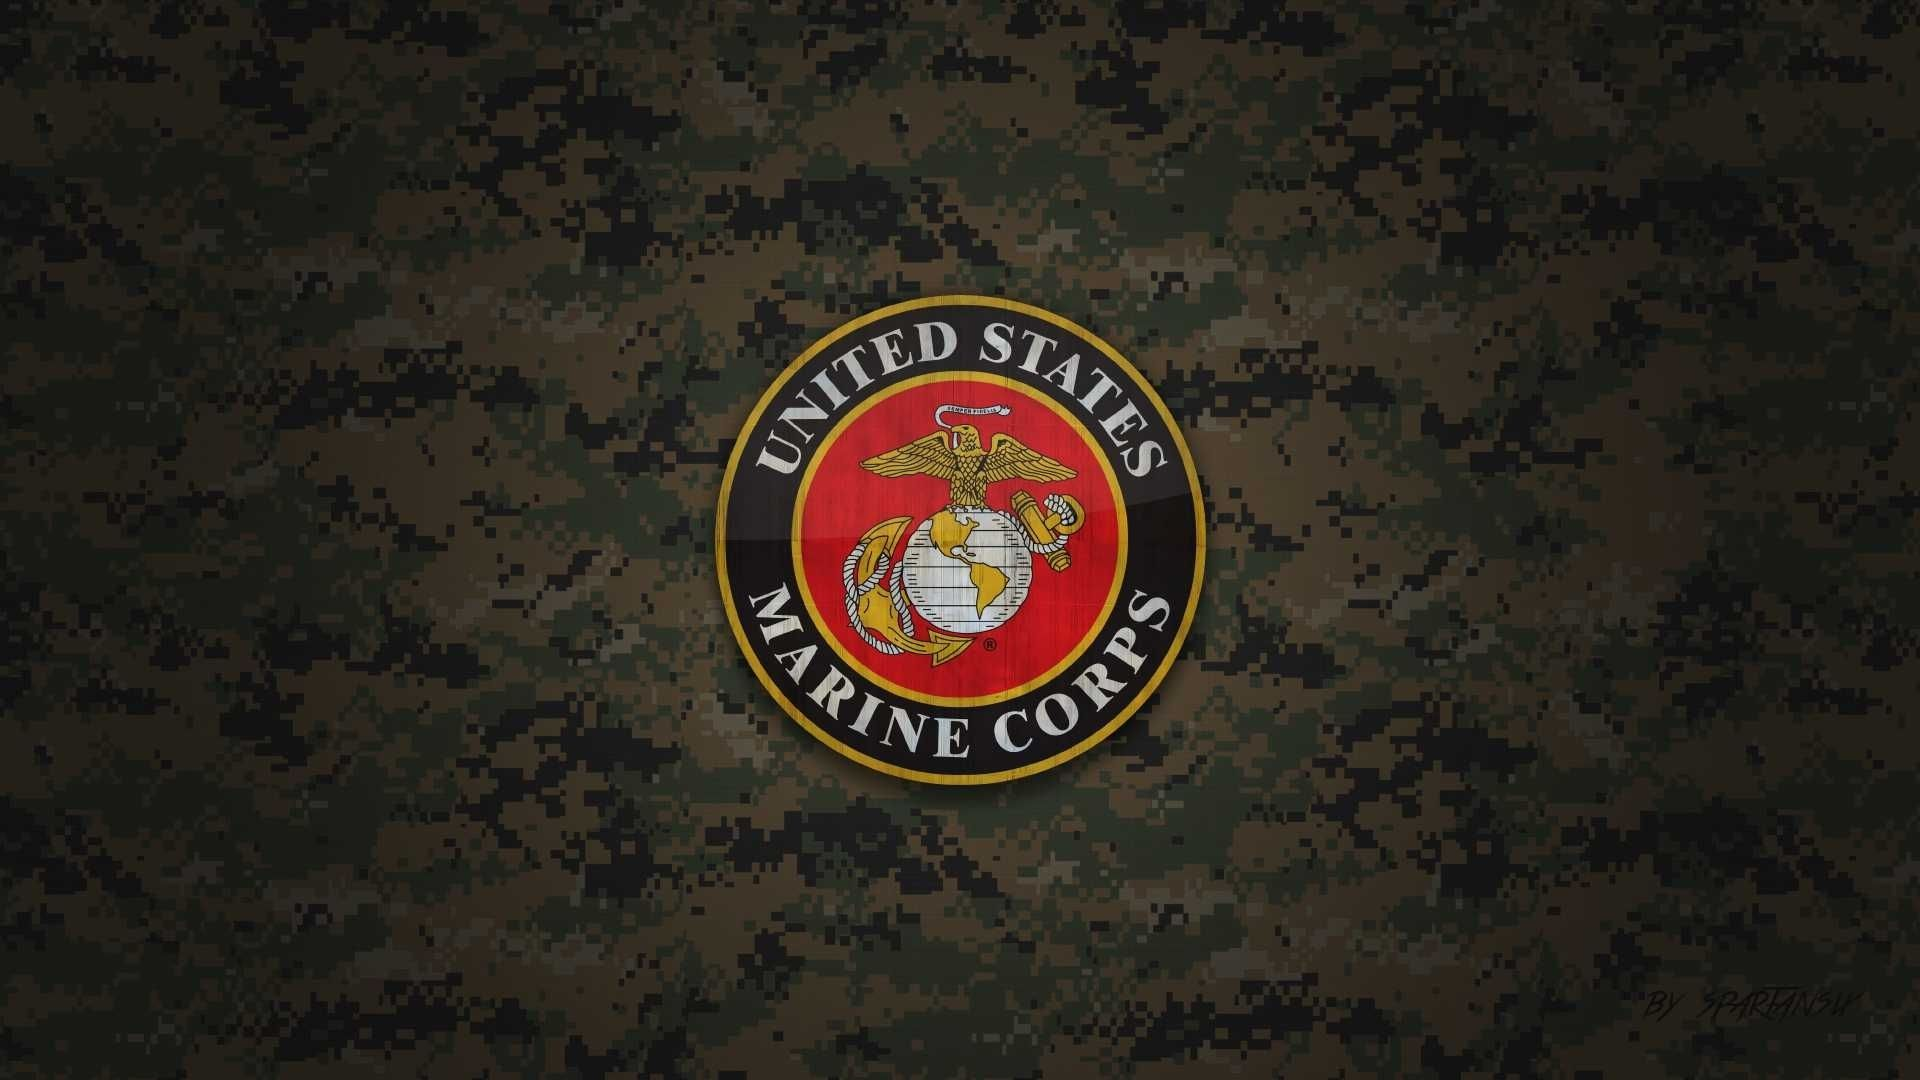 Top Marine Corp Iphone Wallpaper Full Hd For Pc Background